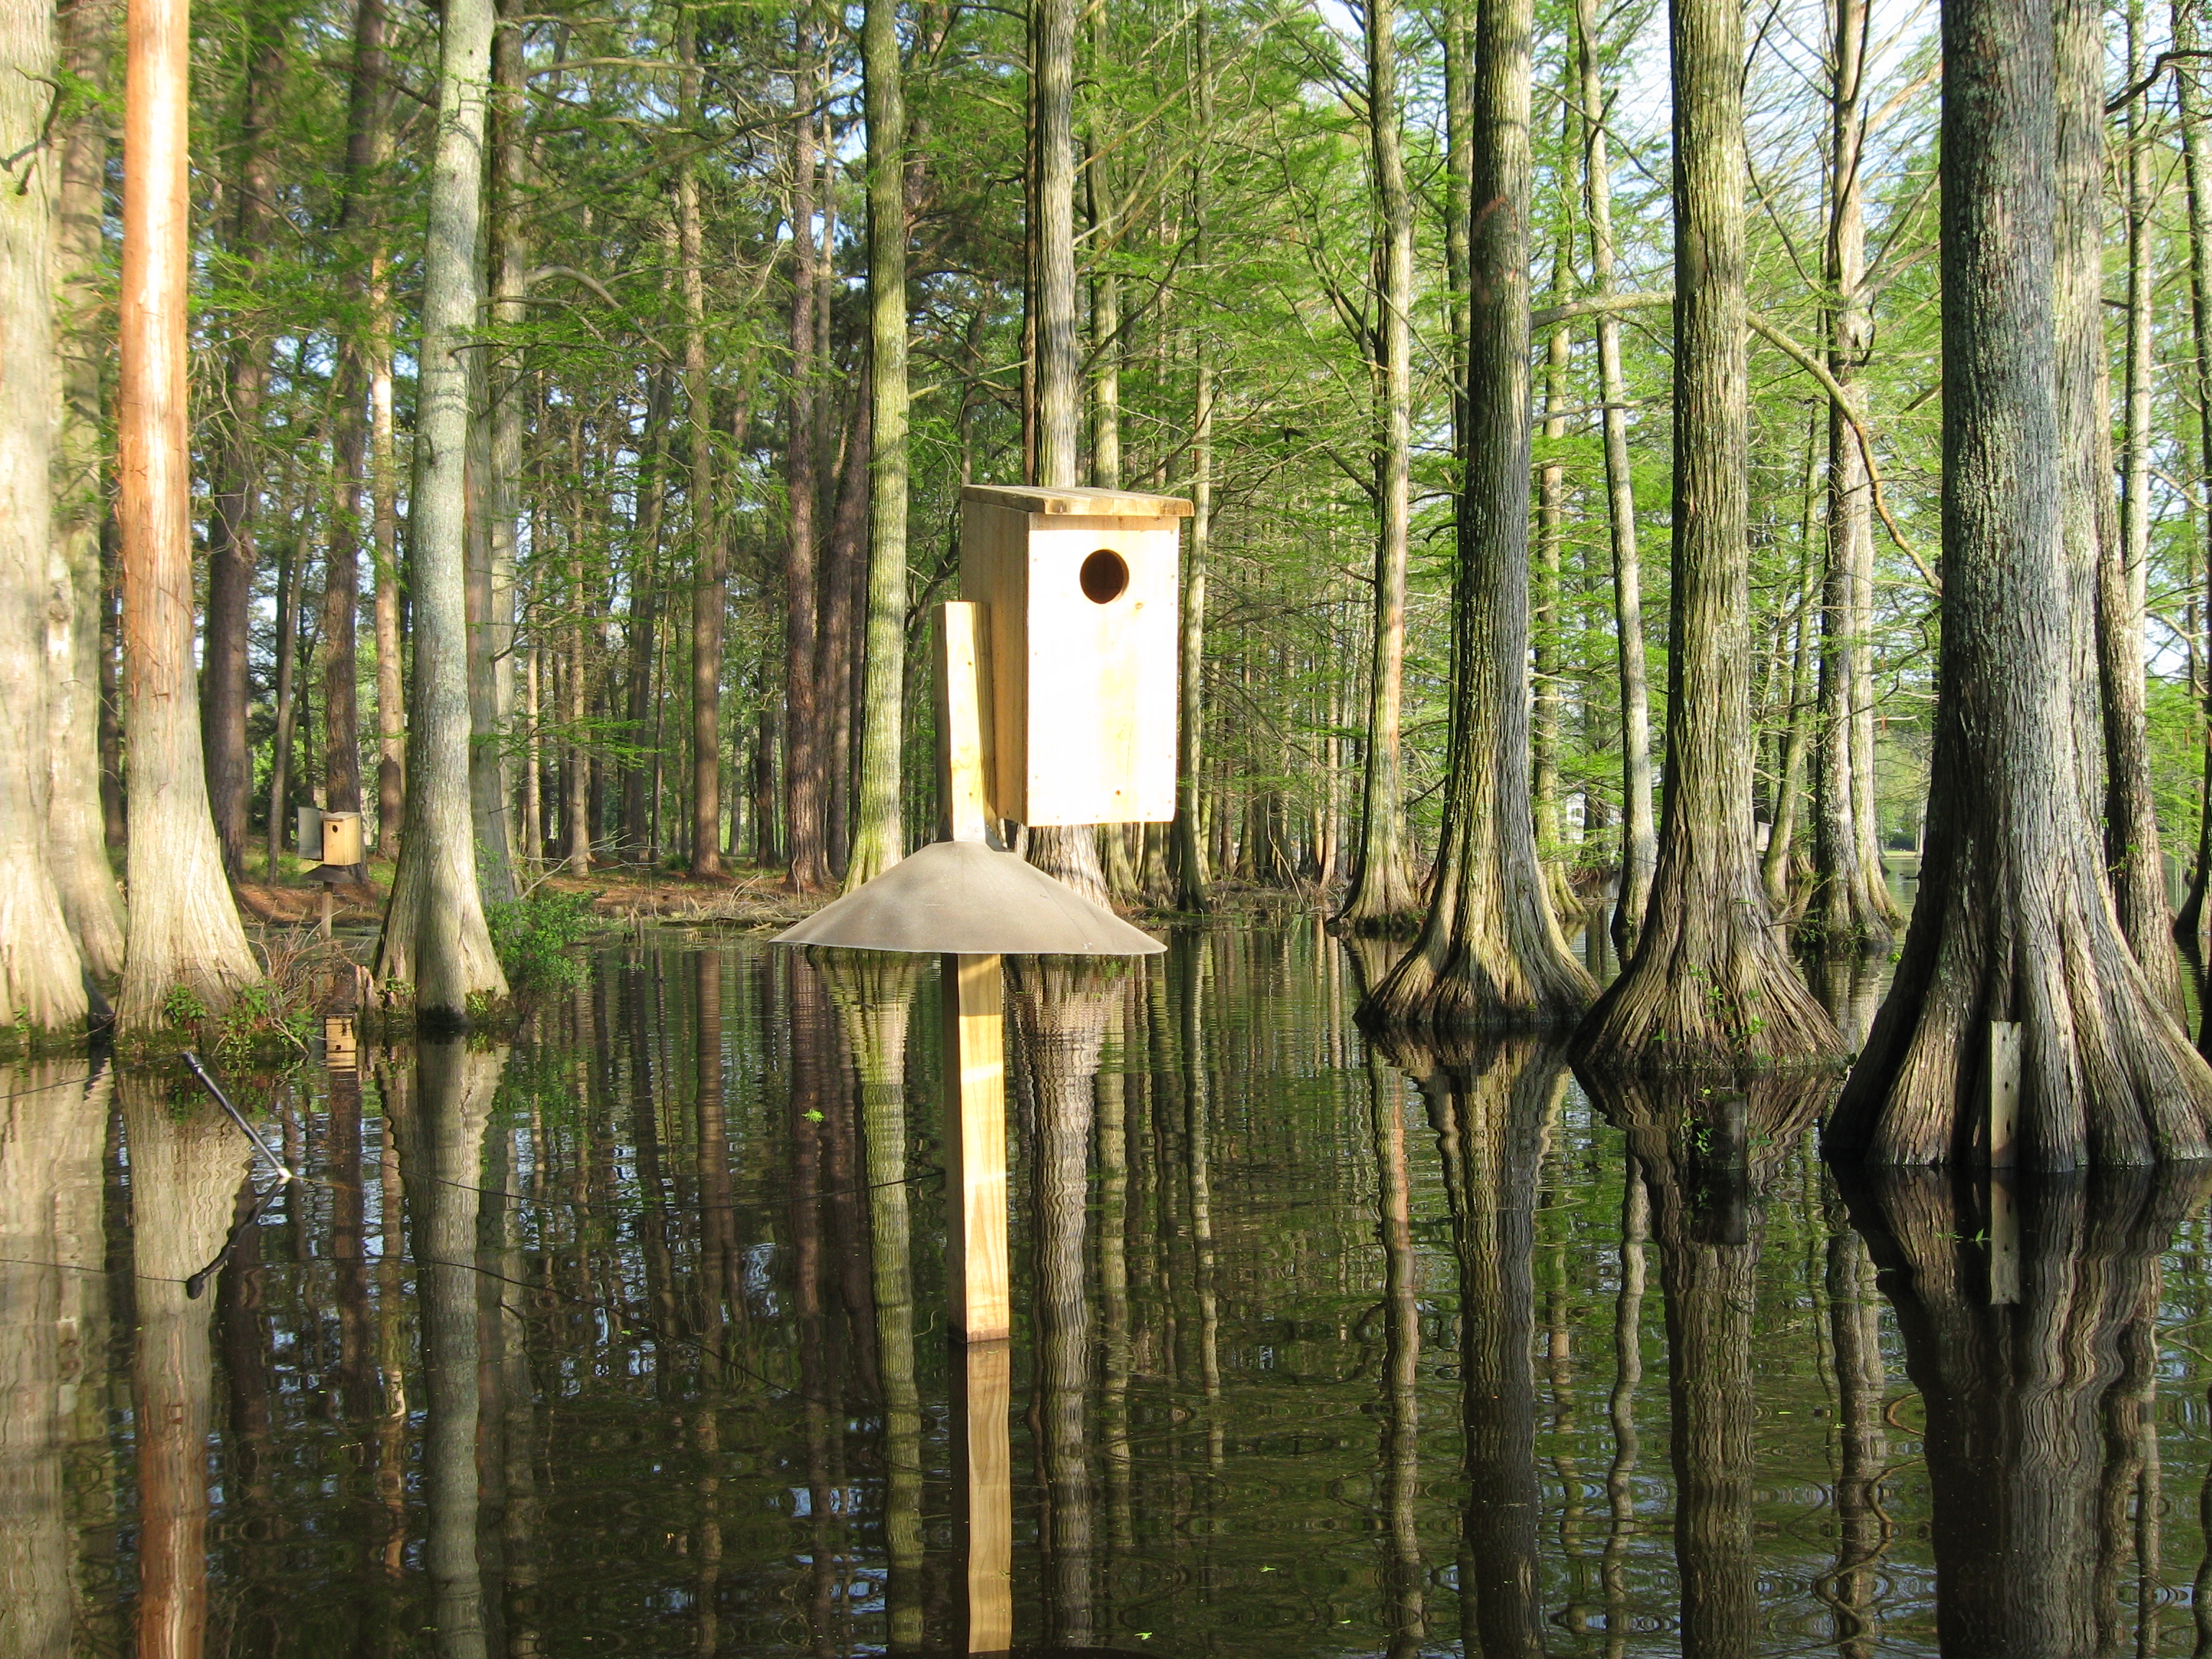 View photos from the woodiecam1 wood duck nest cam woodie wood ducks nest box publicscrutiny Choice Image